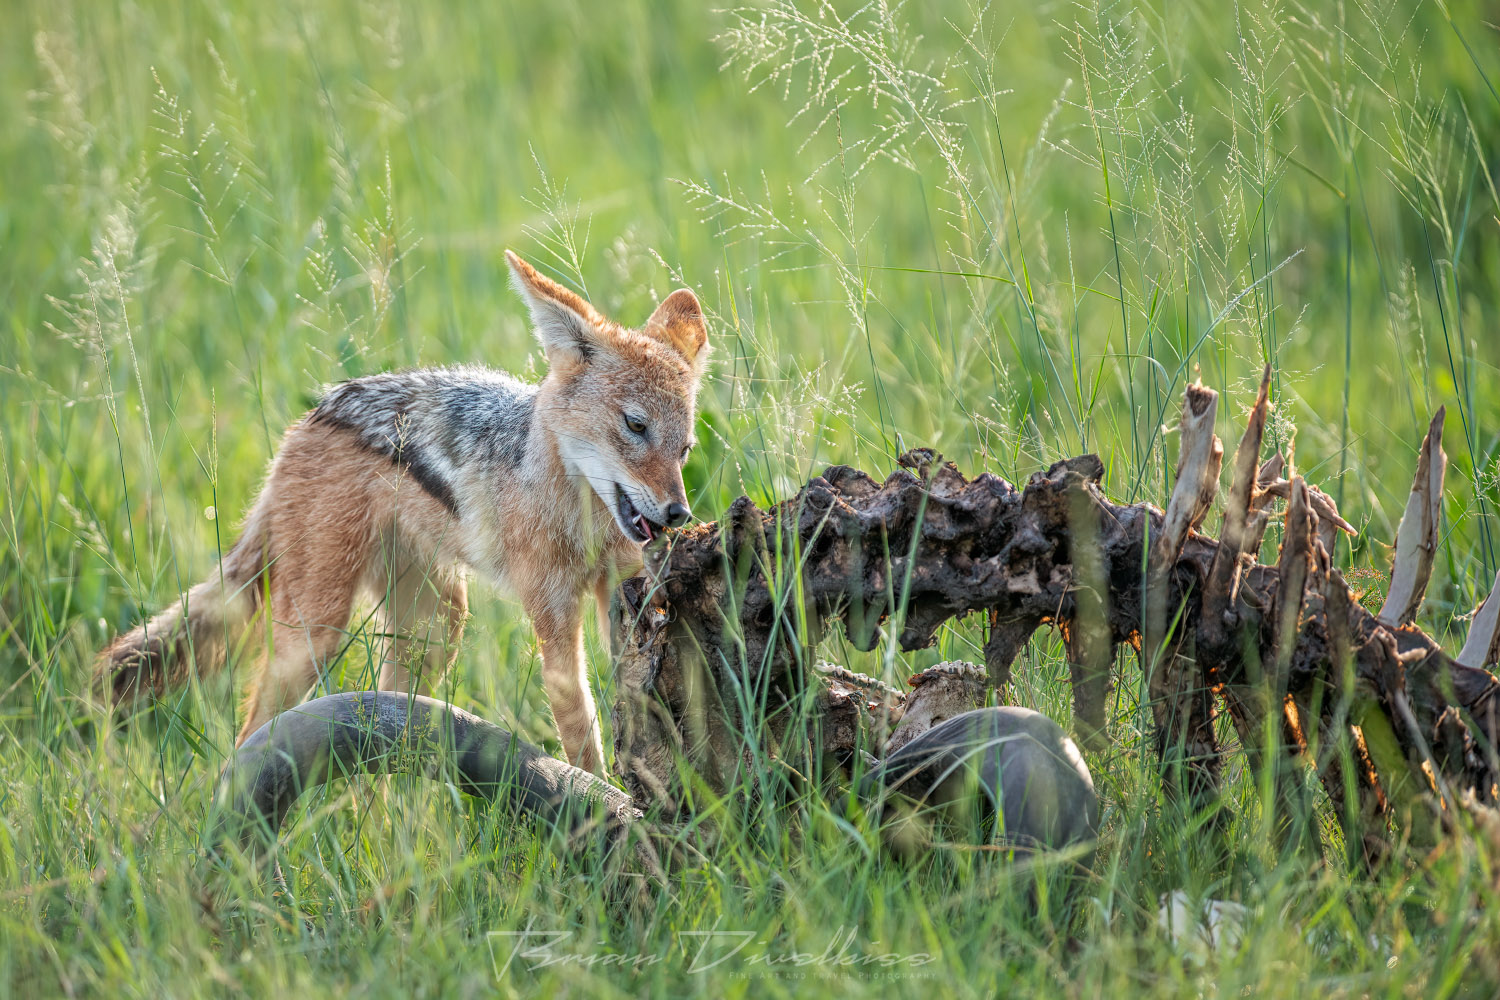 A jackal enjoys an evening snack after the other carnivores have had their fill.